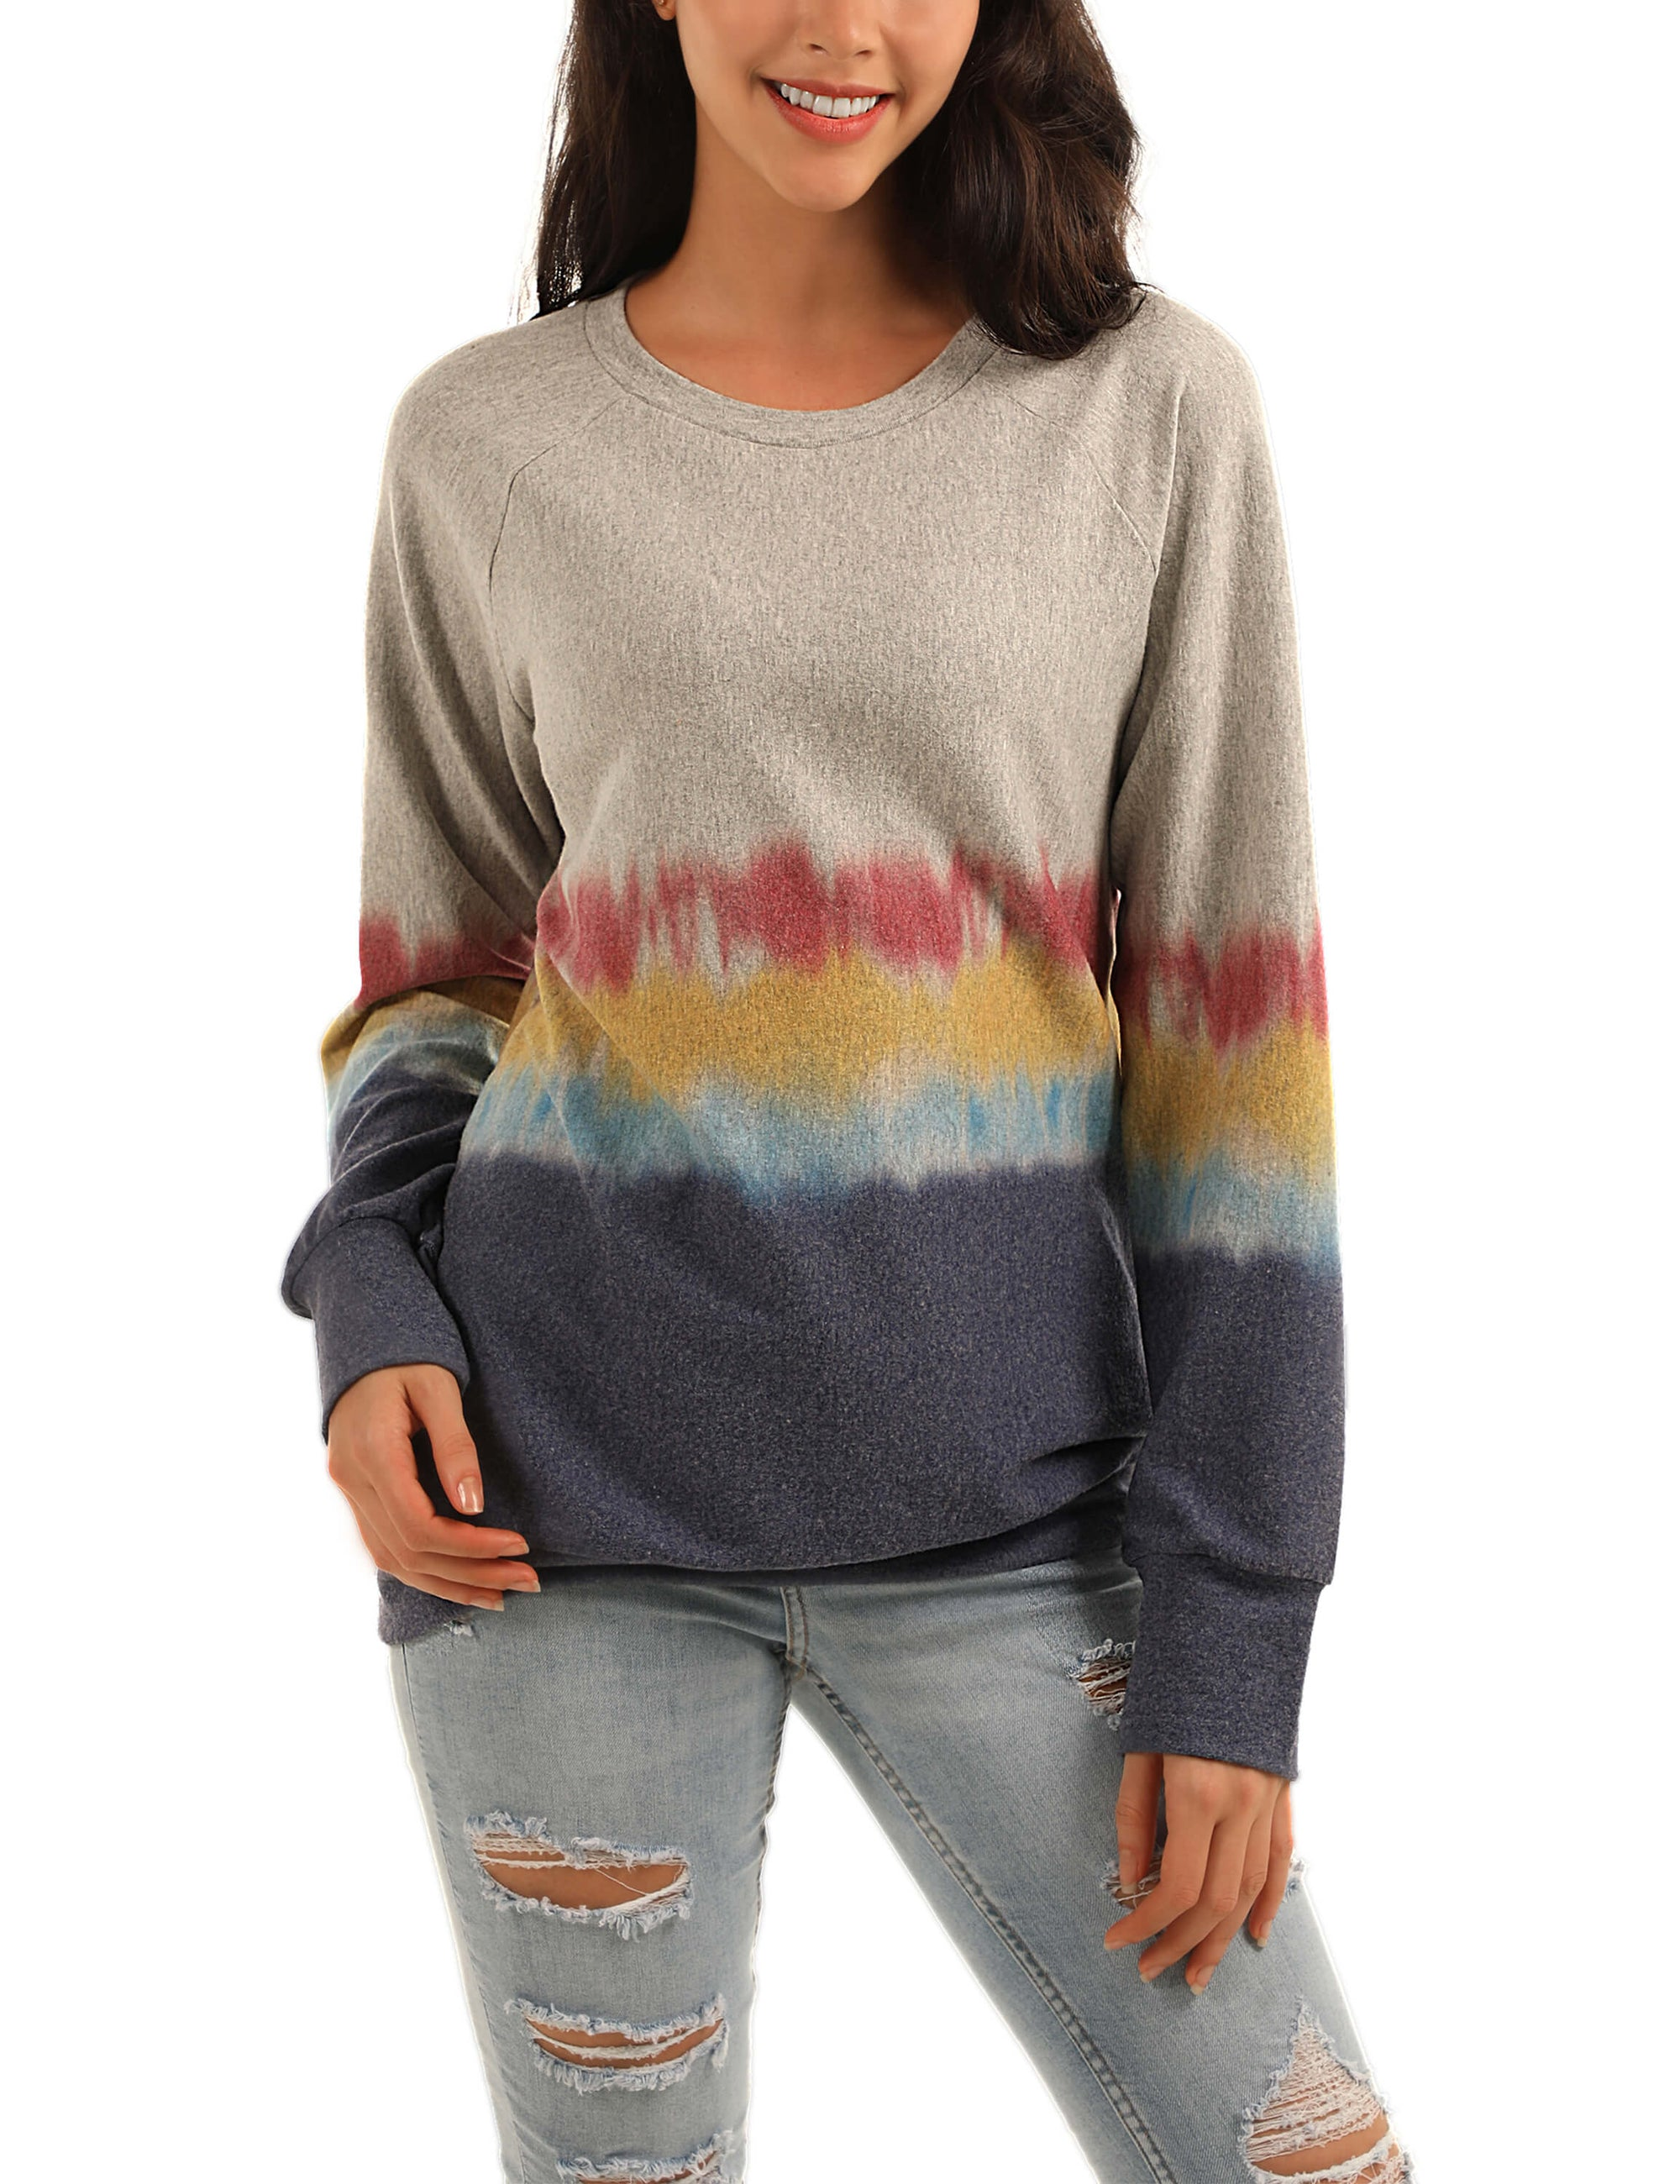 Blooming Jelly_Colorful Life Tie Dye Color Block Sweatshirt_Color Block Tie Dye_302027_07_Women Autumn&Winter Daily Wear_Tops_Sweatshirt